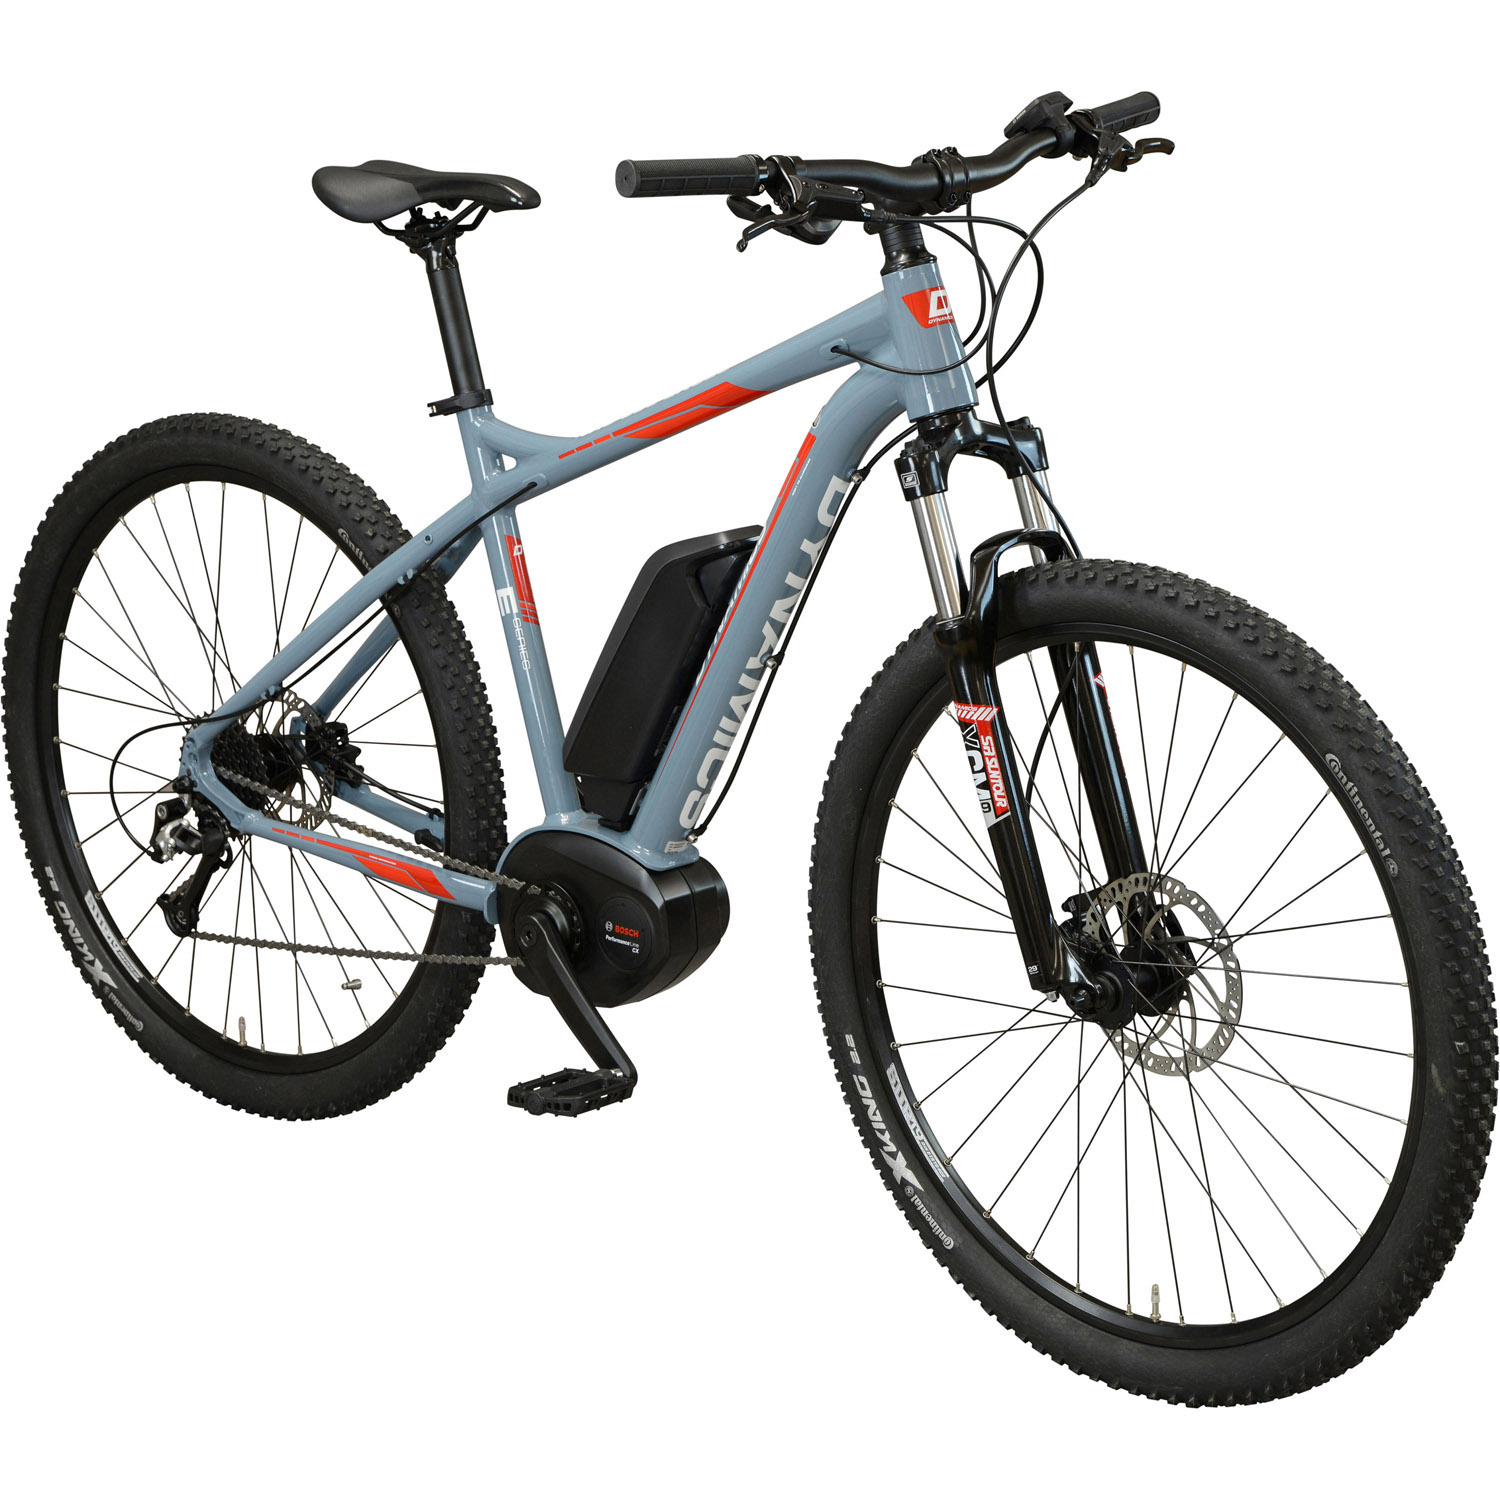 dynamics stone 900 cx4 e mountainbike 29 zoll 47 cm. Black Bedroom Furniture Sets. Home Design Ideas